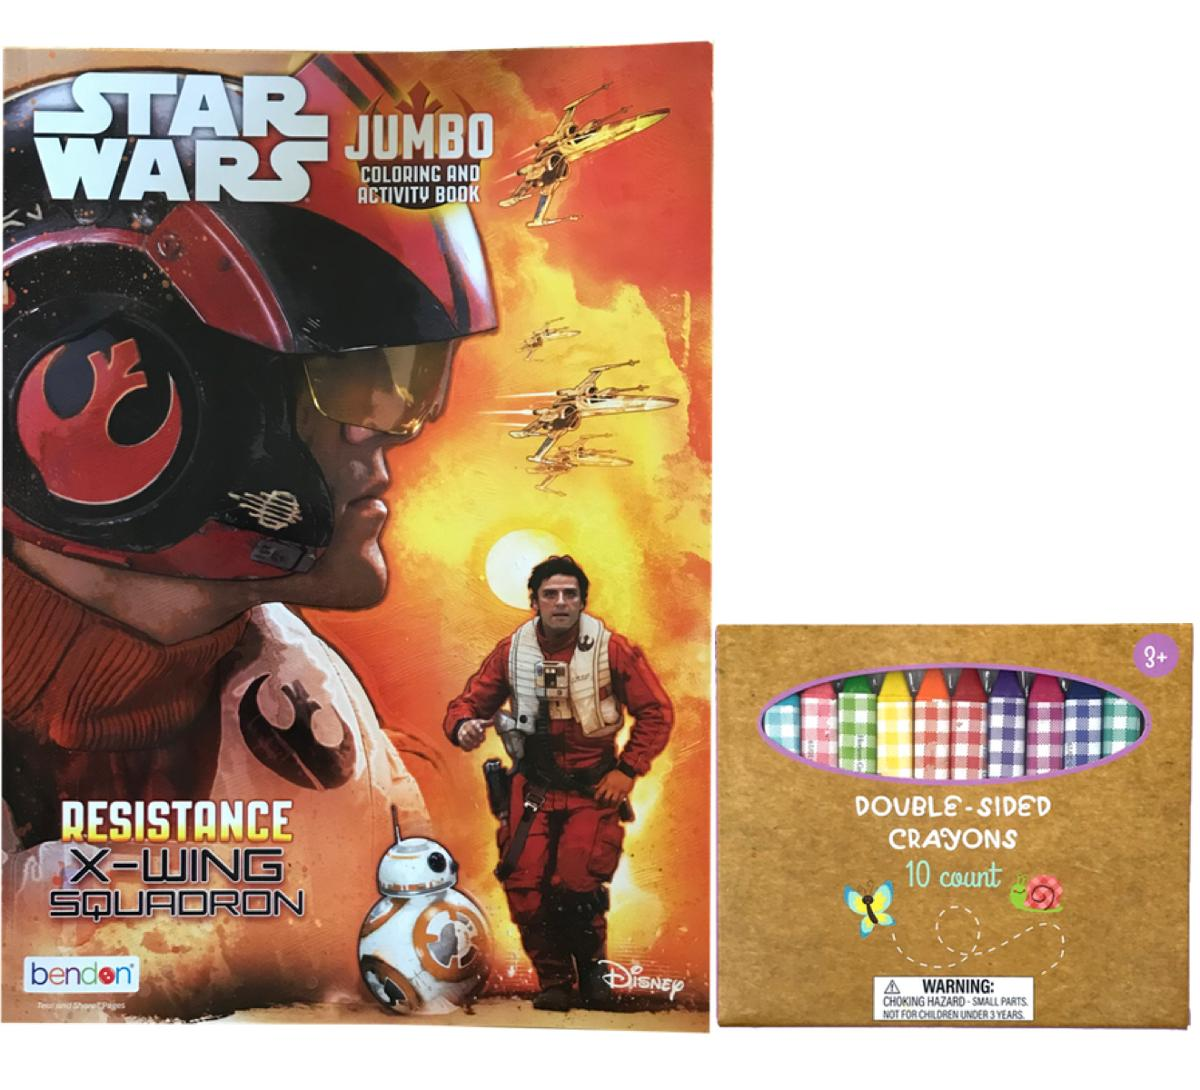 Star Wars Jumbo Coloring and Activity Book and Double Sided Crayons